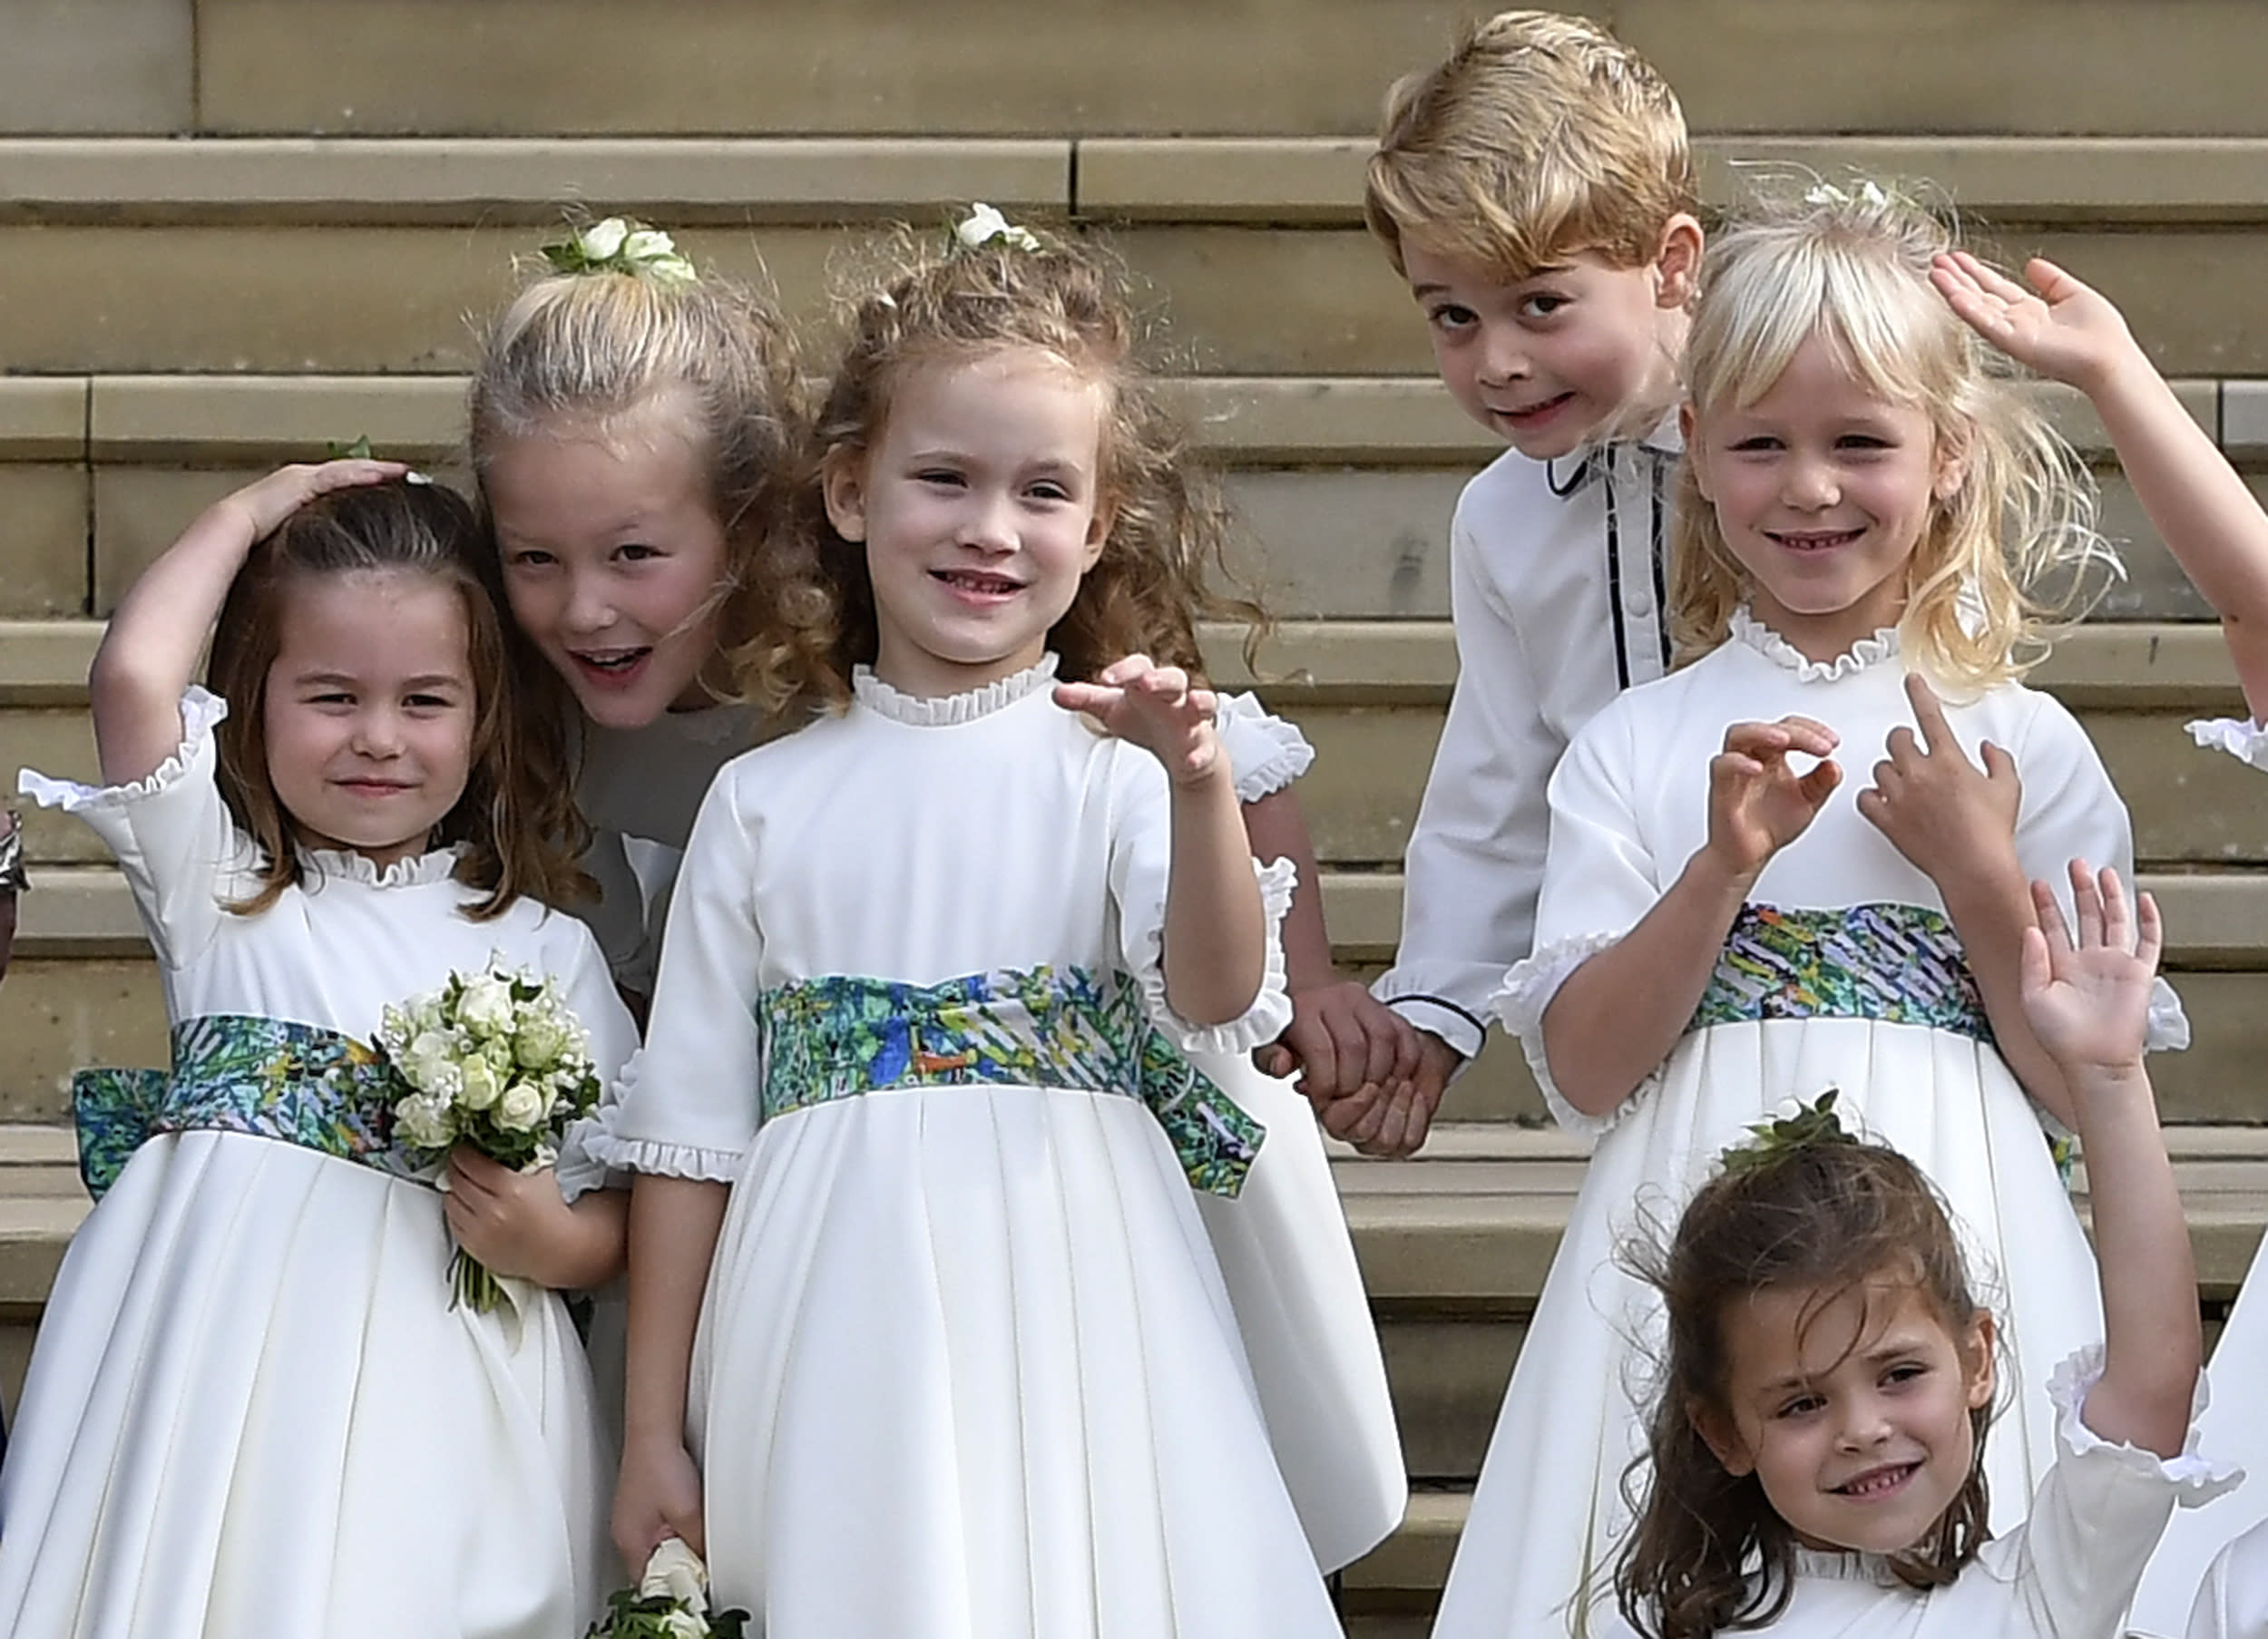 File photo dated 12/10/18 of bridesmaids and page boys, including Prince George and Princess Charlotte, waving as they leave after the royal wedding of Princess Eugenie and her husband Jack Brooksbank at St George's Chapel in Windsor Castle.